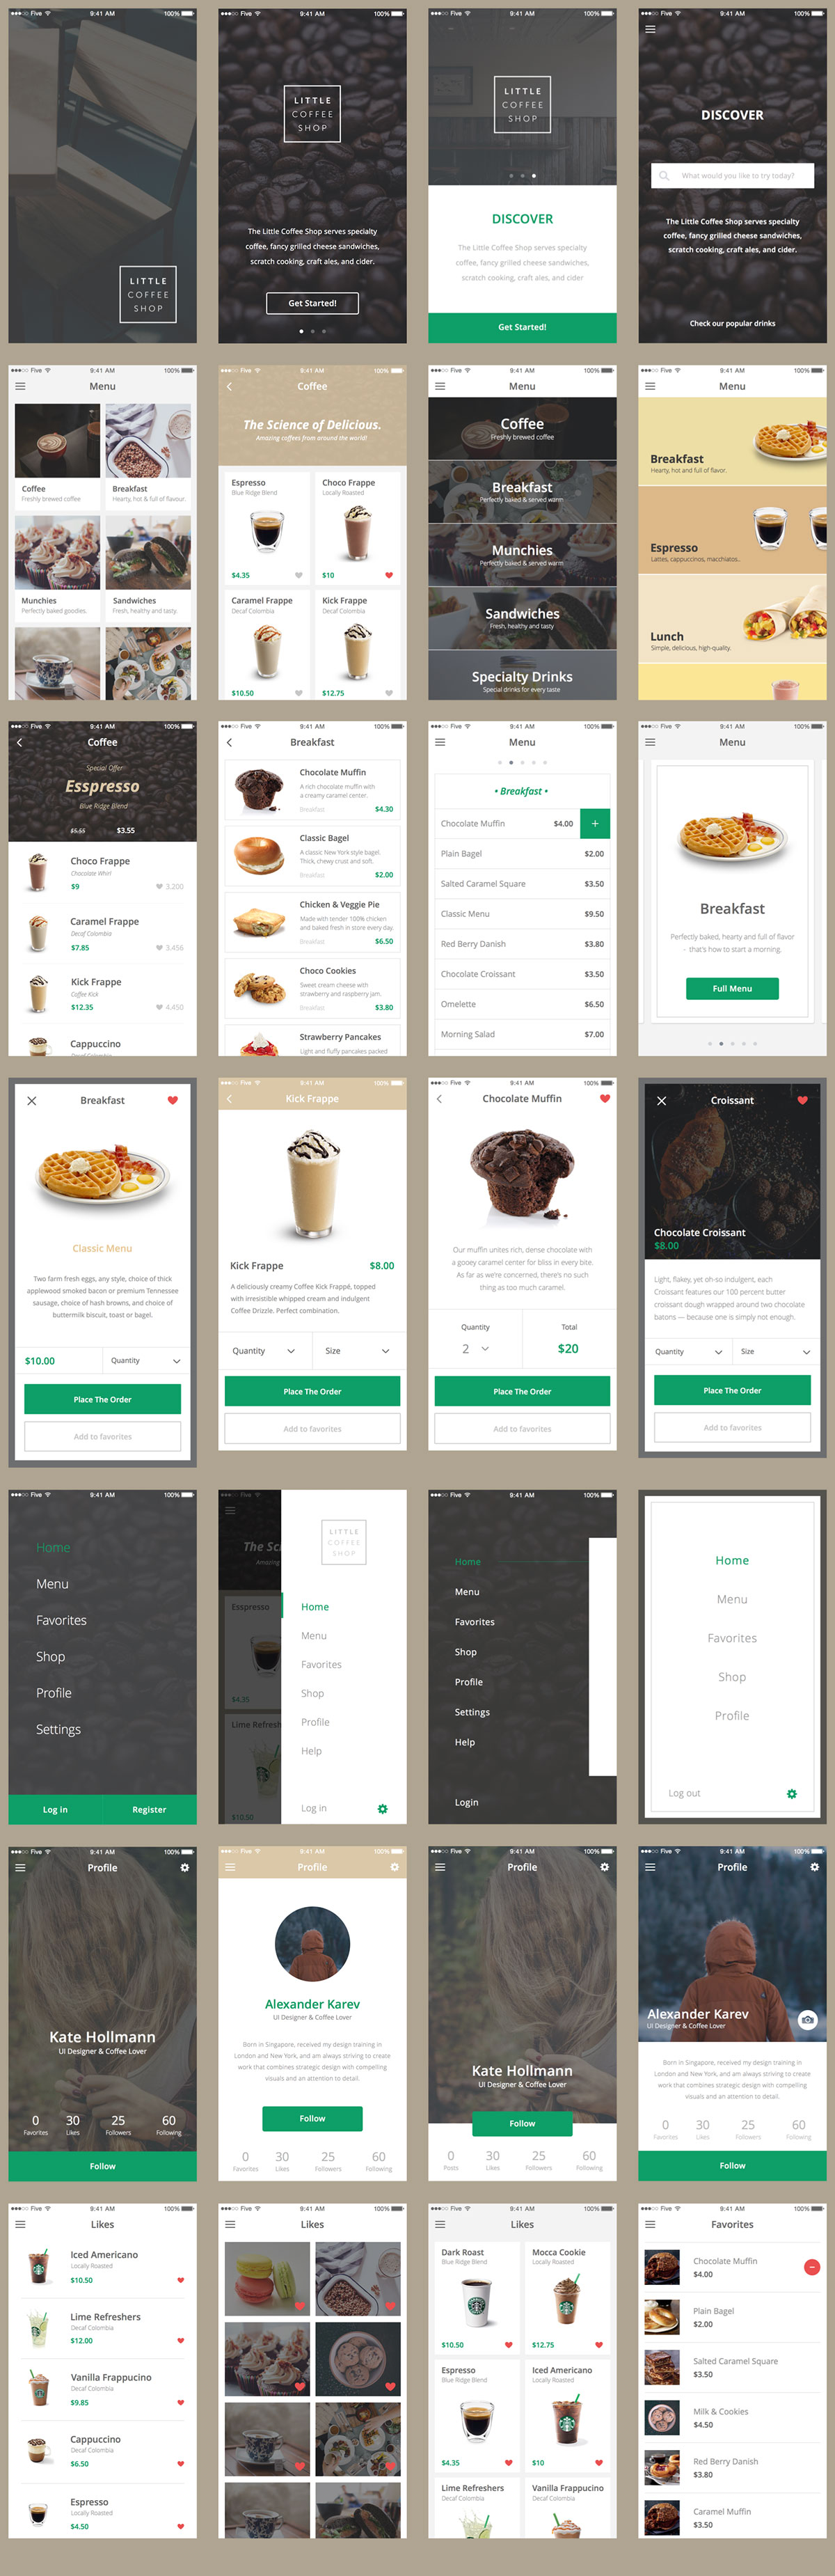 Ecommerce Free Mobile App UI Kit